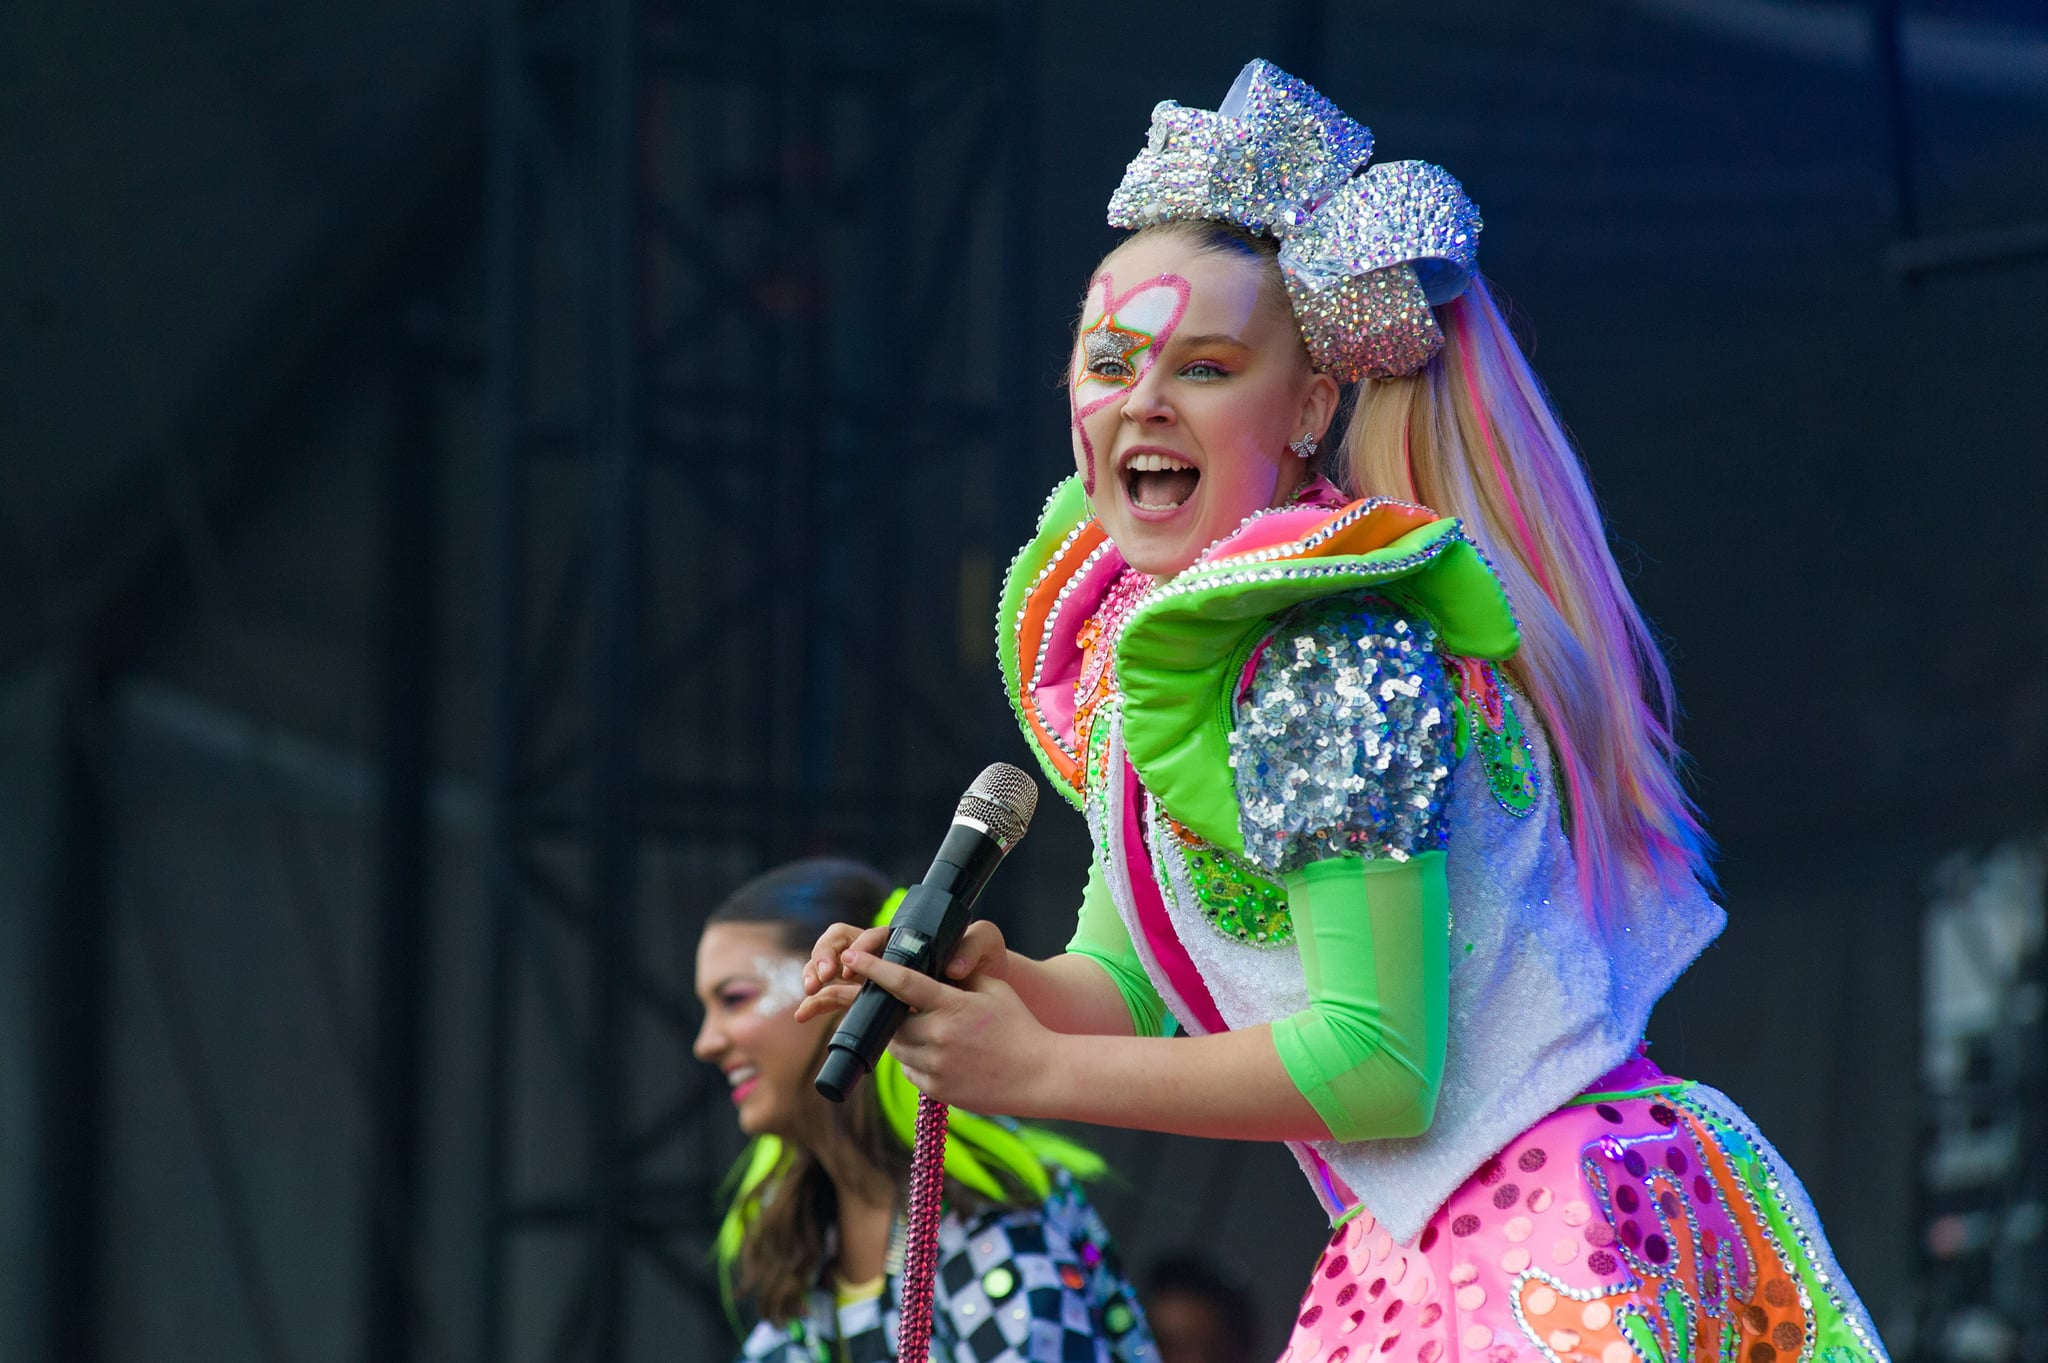 CHICAGO, ILLINOIS - JUNE 09: JoJo Siwa performs onstage during day two of Nickelodeon's Second Annual SlimeFest at Huntington Bank Pavilion on June 09, 2019 in Chicago, Illinois. (Photo by Timothy Hiatt/Getty Images  for Nickelodeon)